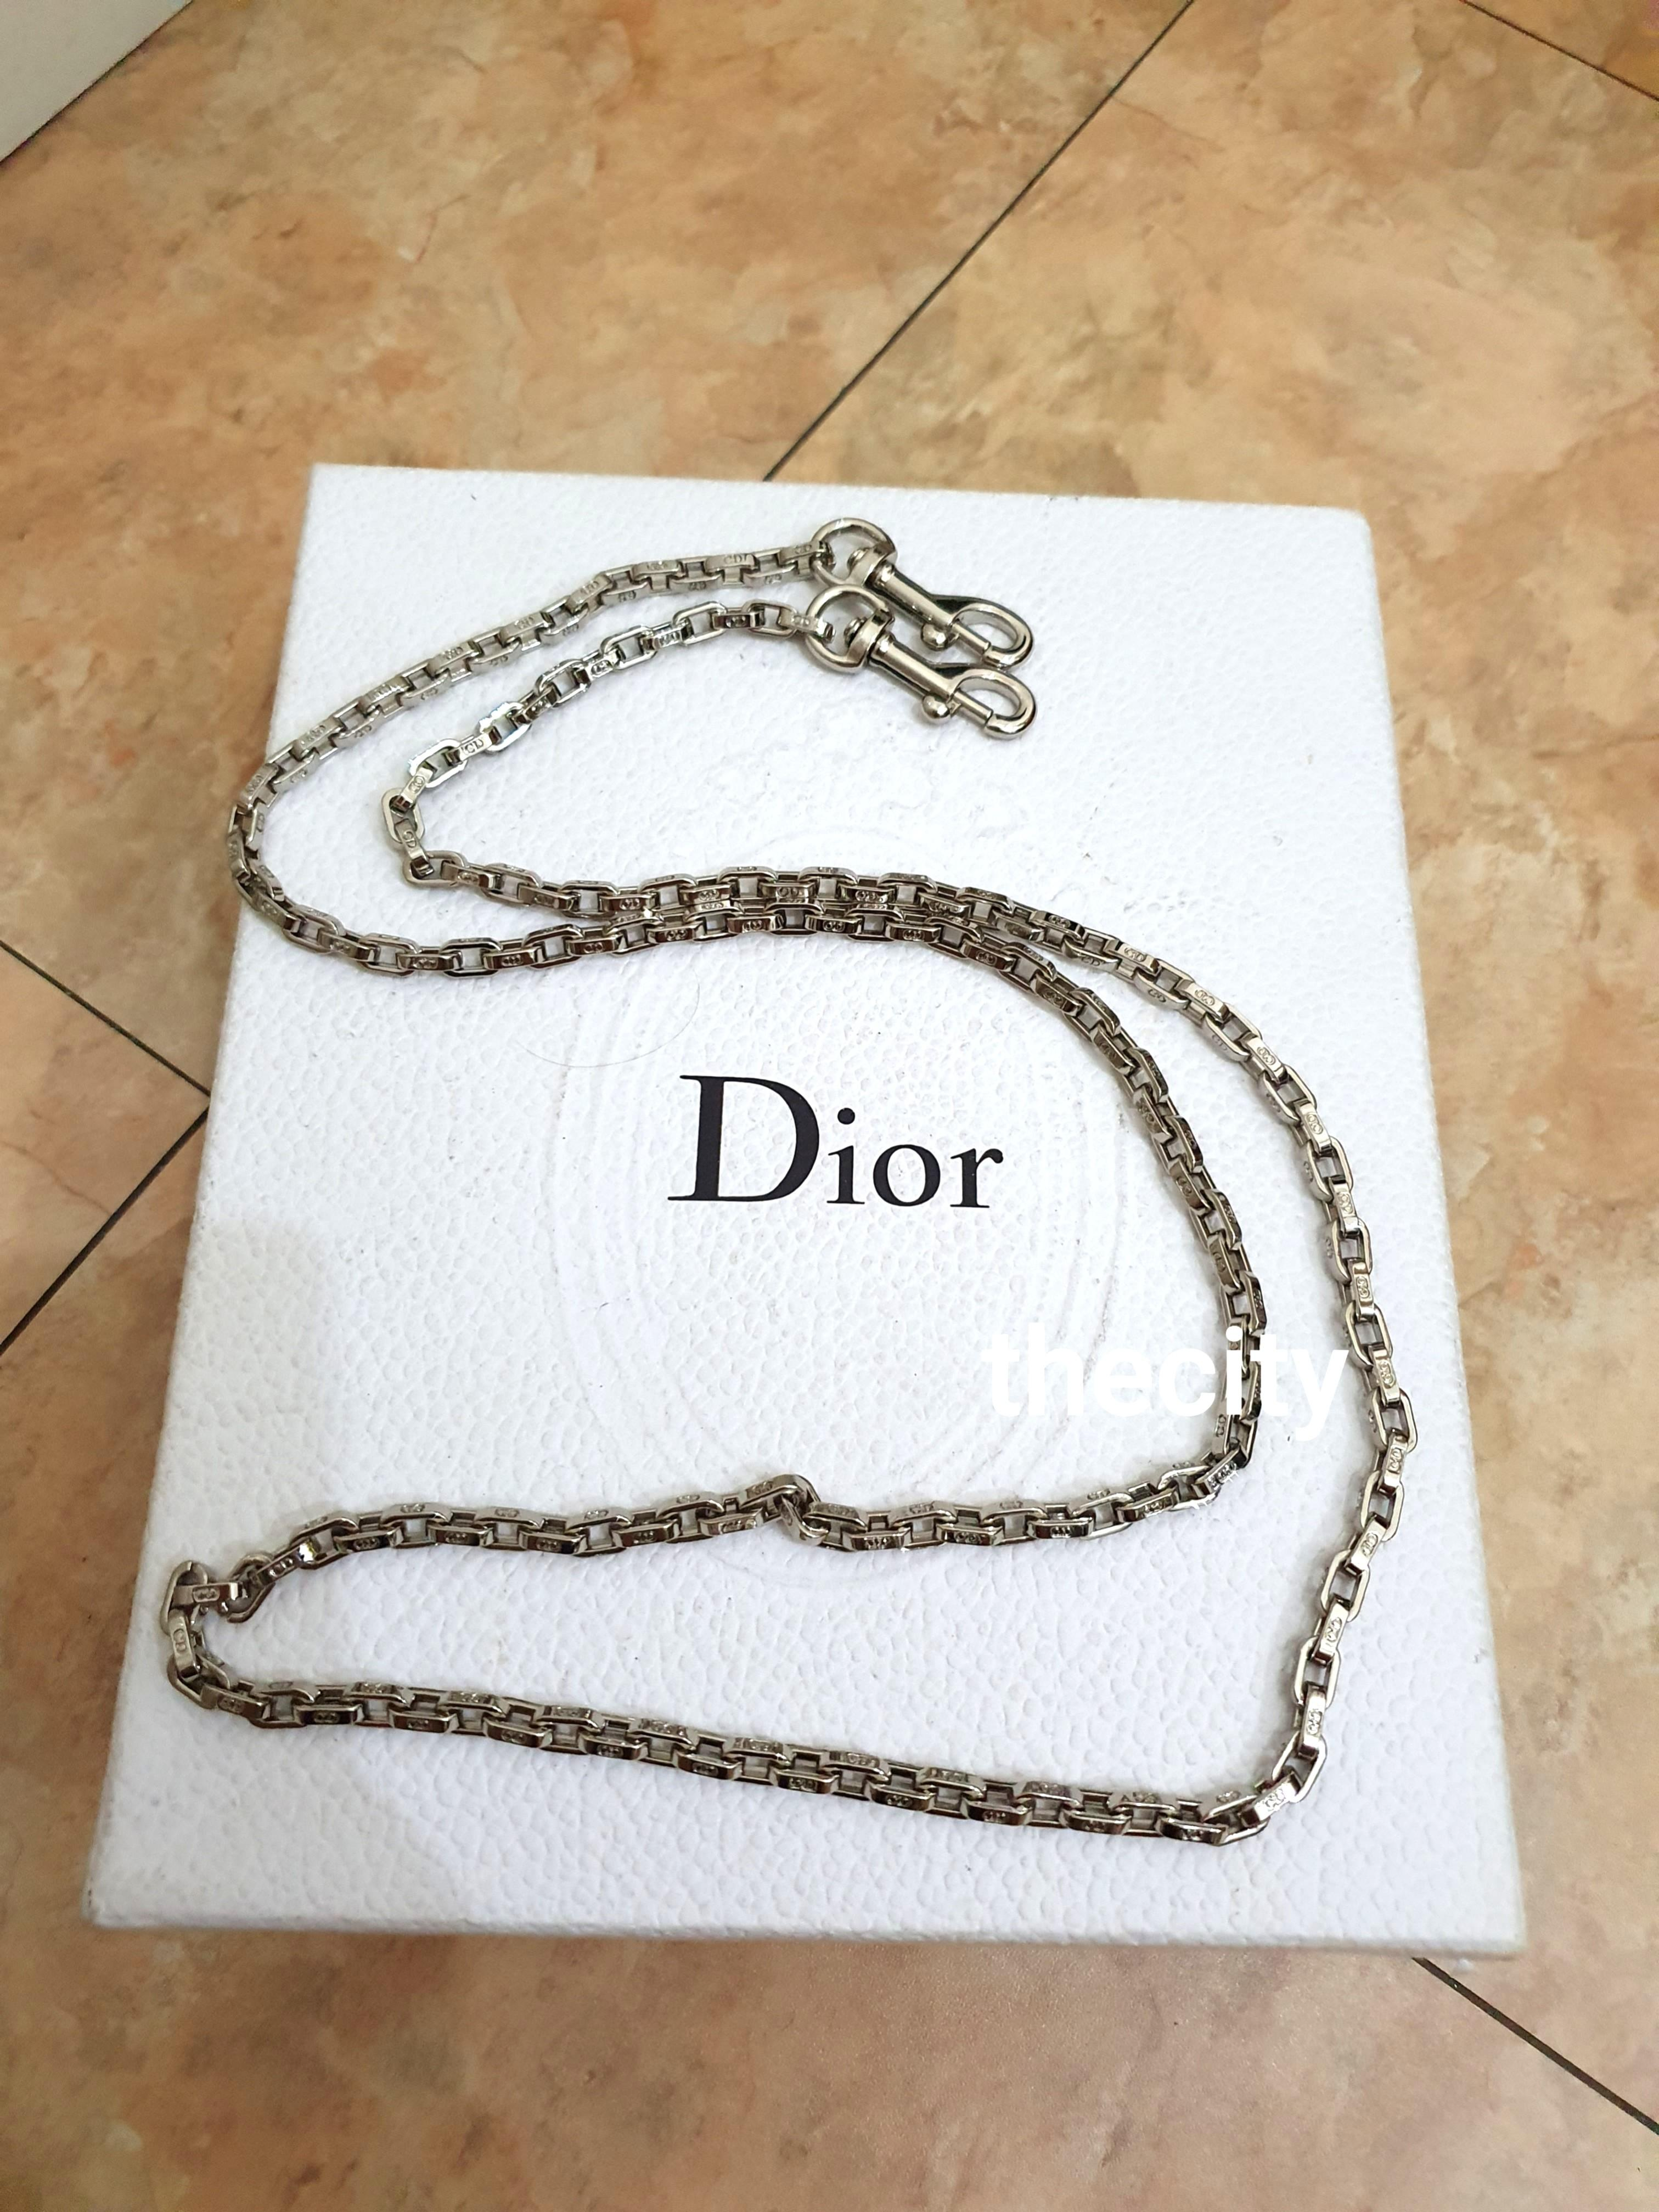 LIKE NEW ! - AUTHENTIC DIOR SILVER CHAIN STRAP - (TAKEN FROM DIOR BAG SET) -  APPROX 110 CM LENGTH - LIKE NEW ! NEVER BEEN USED - CAN CROSSBODY / SLING